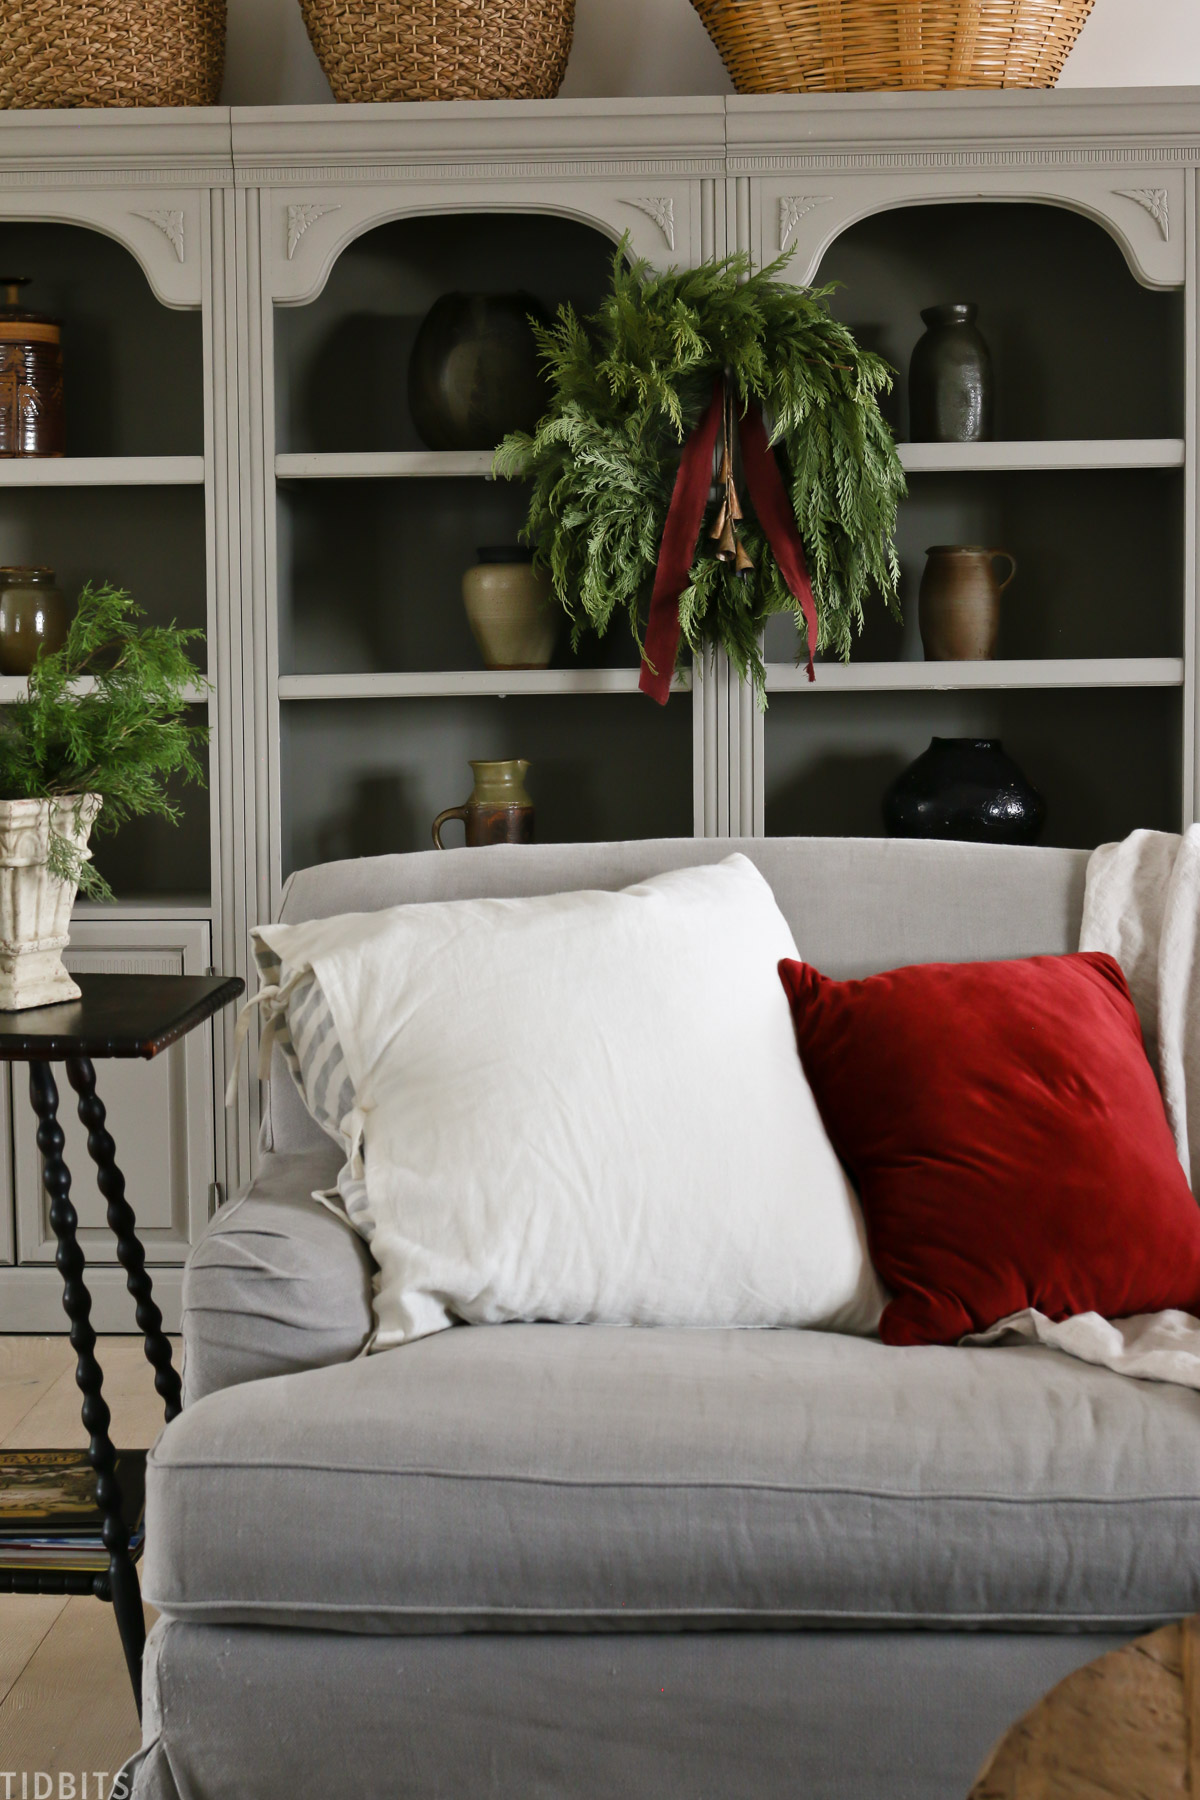 couch in front of refurbished bookshelves with baskets and vases and wreath hanging from center bookshelf